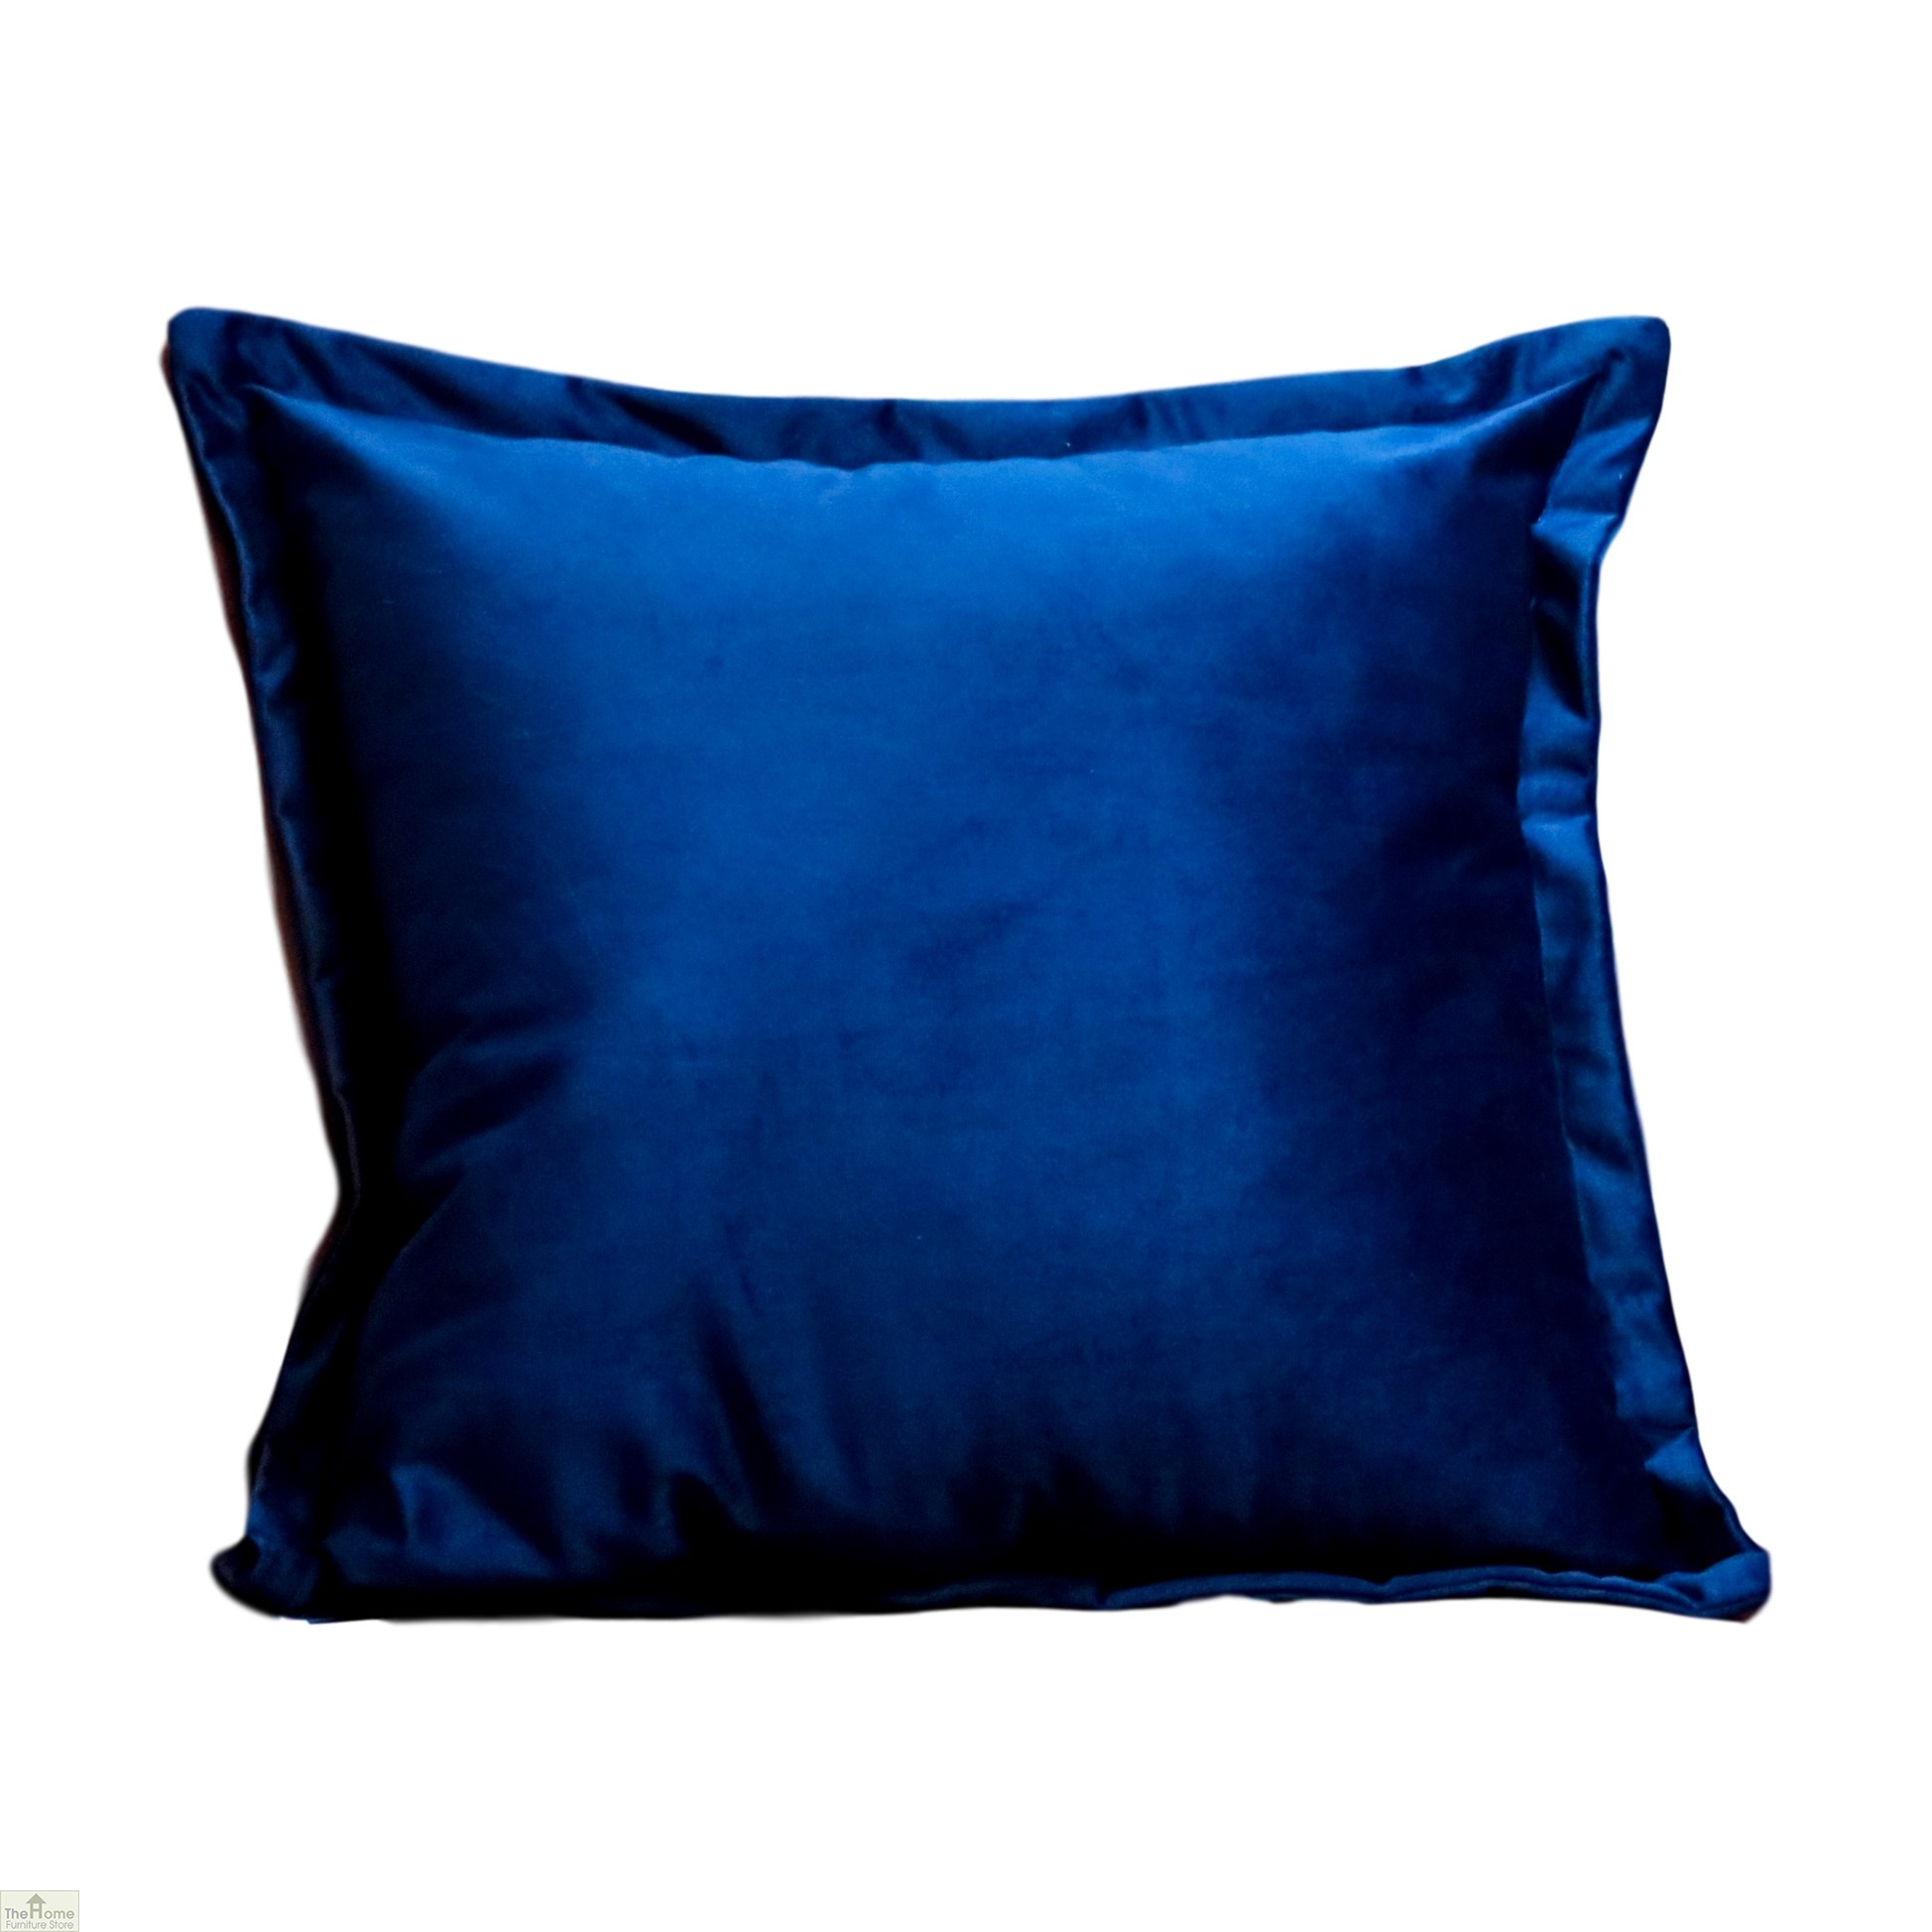 Blue Square Velvet Cushion Cover